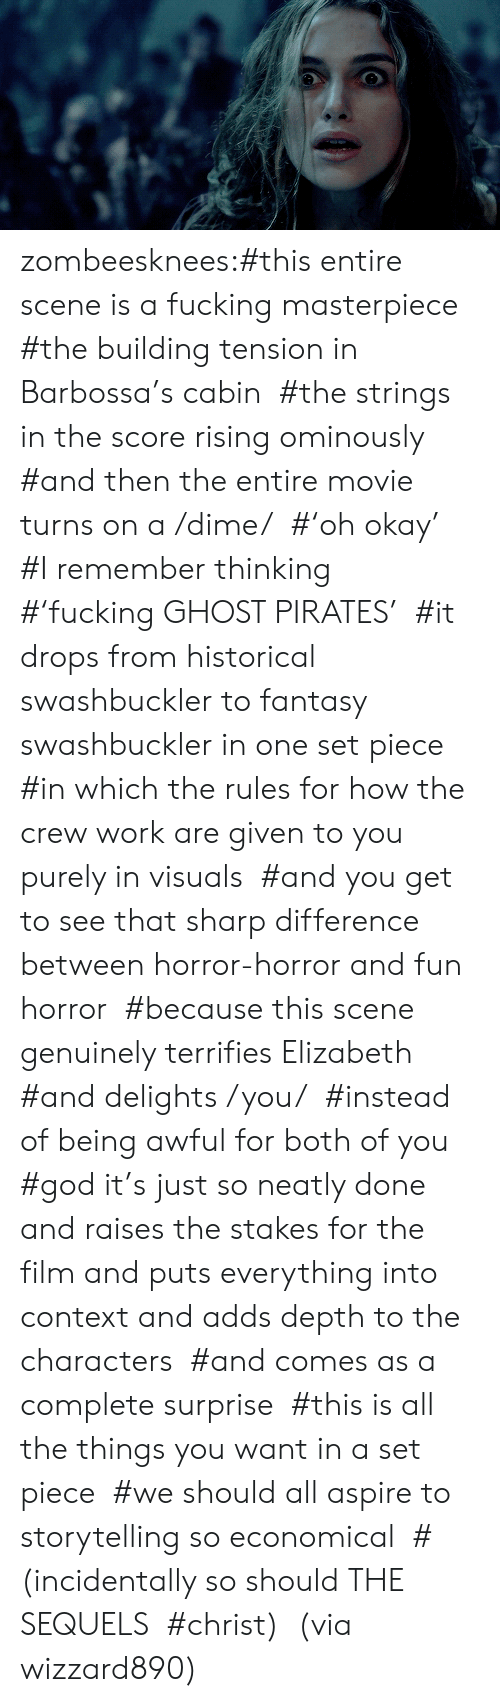 Fucking, God, and Tumblr: zombeesknees:#this entire scene is a fucking masterpiece  #the building tension in Barbossa's cabin  #the strings in the score rising ominously  #and then the entire movie turns on a /dime/  #'oh okay'  #I remember thinking  #'fucking GHOST PIRATES'  #it drops from historical swashbuckler to fantasy swashbuckler in one set piece  #in which the rules for how the crew work are given to you purely in visuals  #and you get to see that sharp difference between horror-horror and fun horror  #because this scene genuinely terrifies Elizabeth  #and delights /you/  #instead of being awful for both of you  #god  it's just so neatly done and raises the stakes for the film and puts  everything into context and adds depth to the characters  #and comes as a complete surprise  #this is all the things you want in a set piece  #we should all aspire to storytelling so economical  #(incidentally so should THE SEQUELS  #christ)  (via wizzard890)